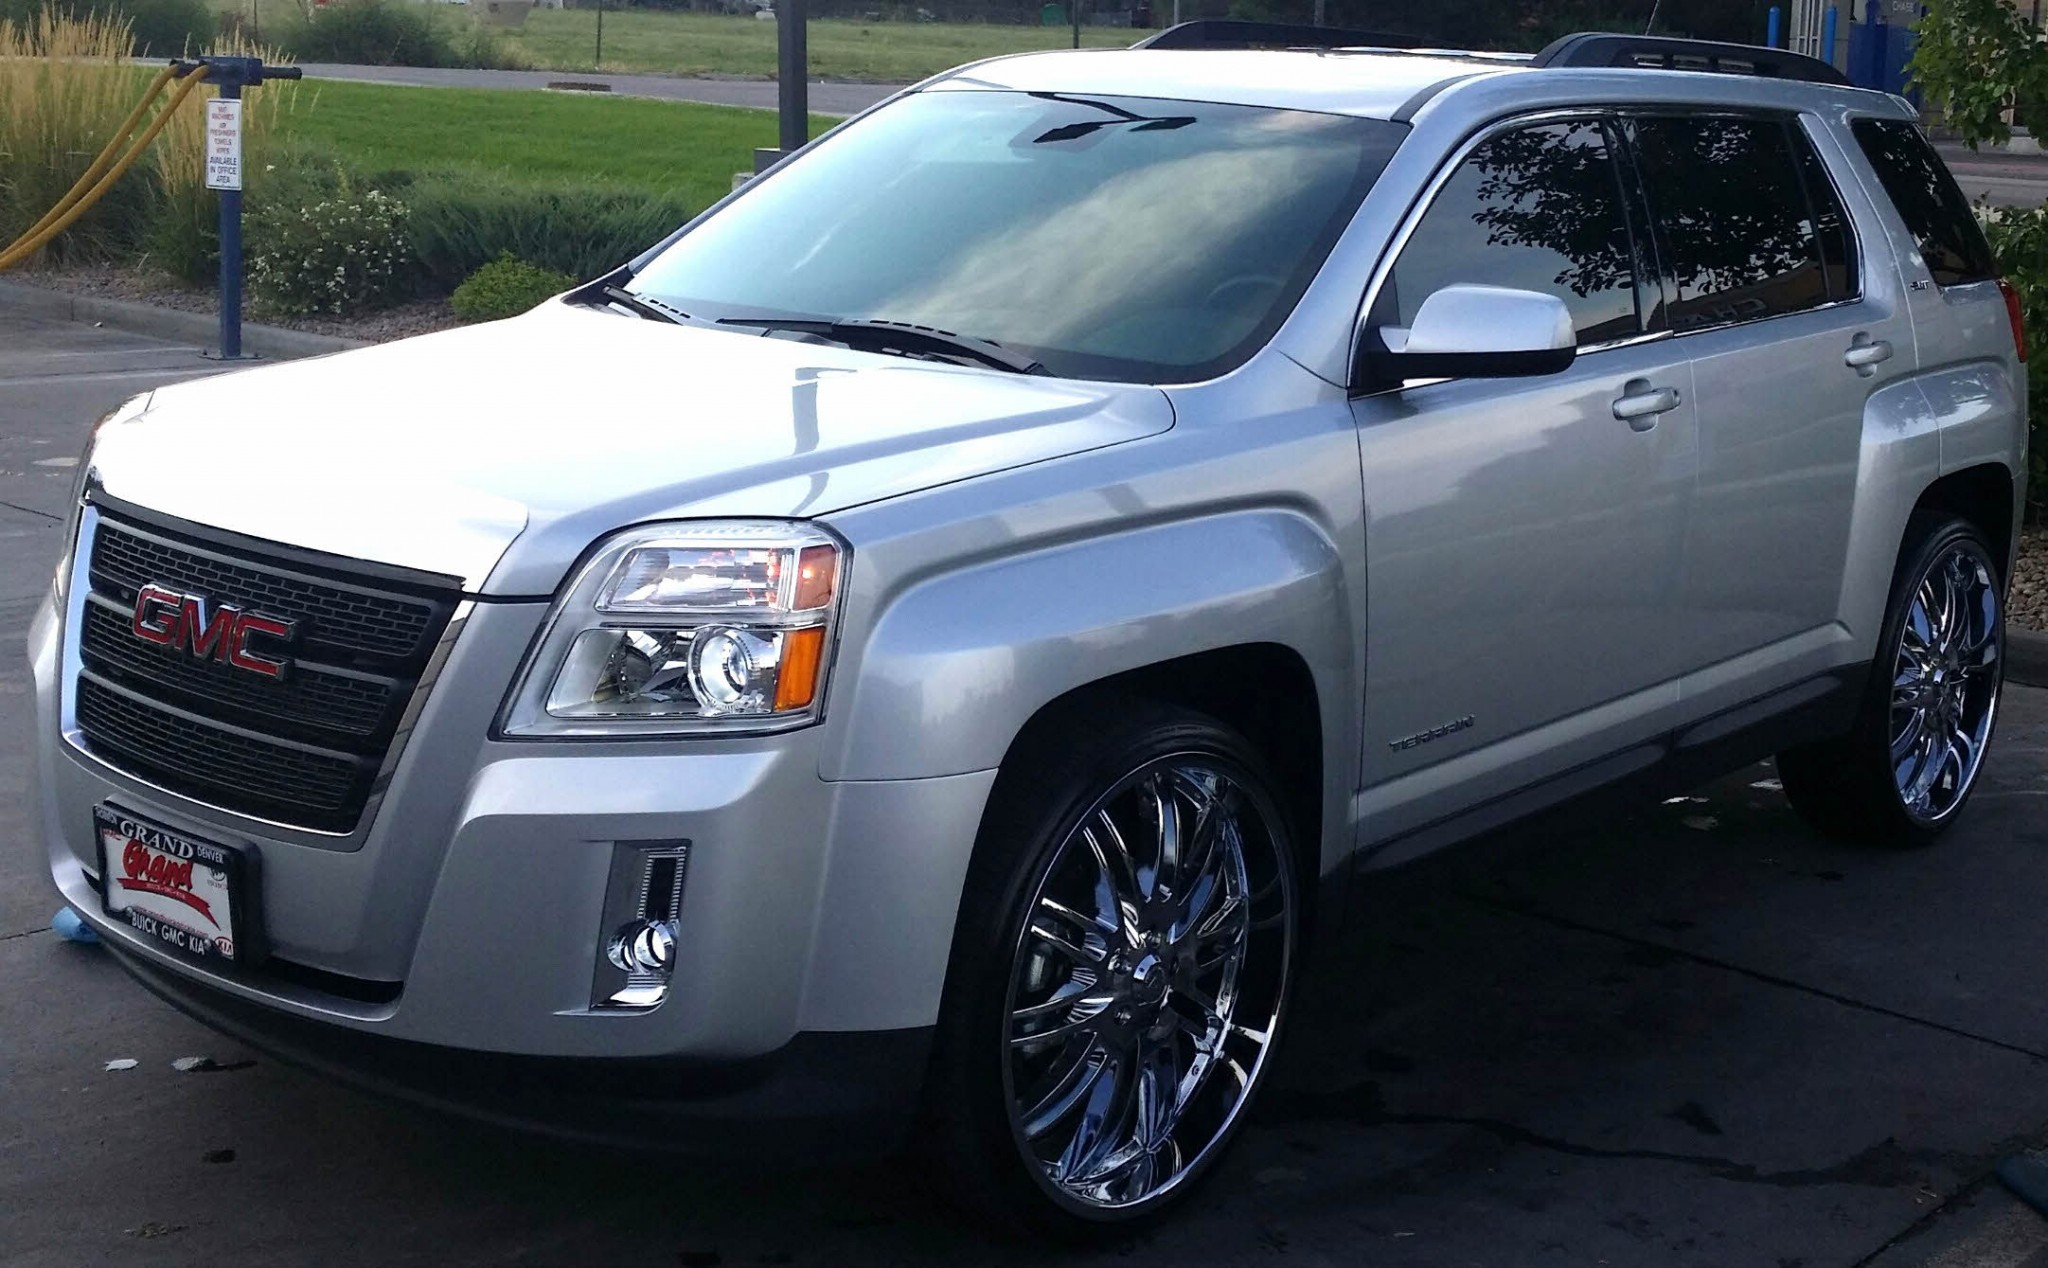 2014 GMC TERRAIN SLT on 24's - Big Rims - Custom Wheels